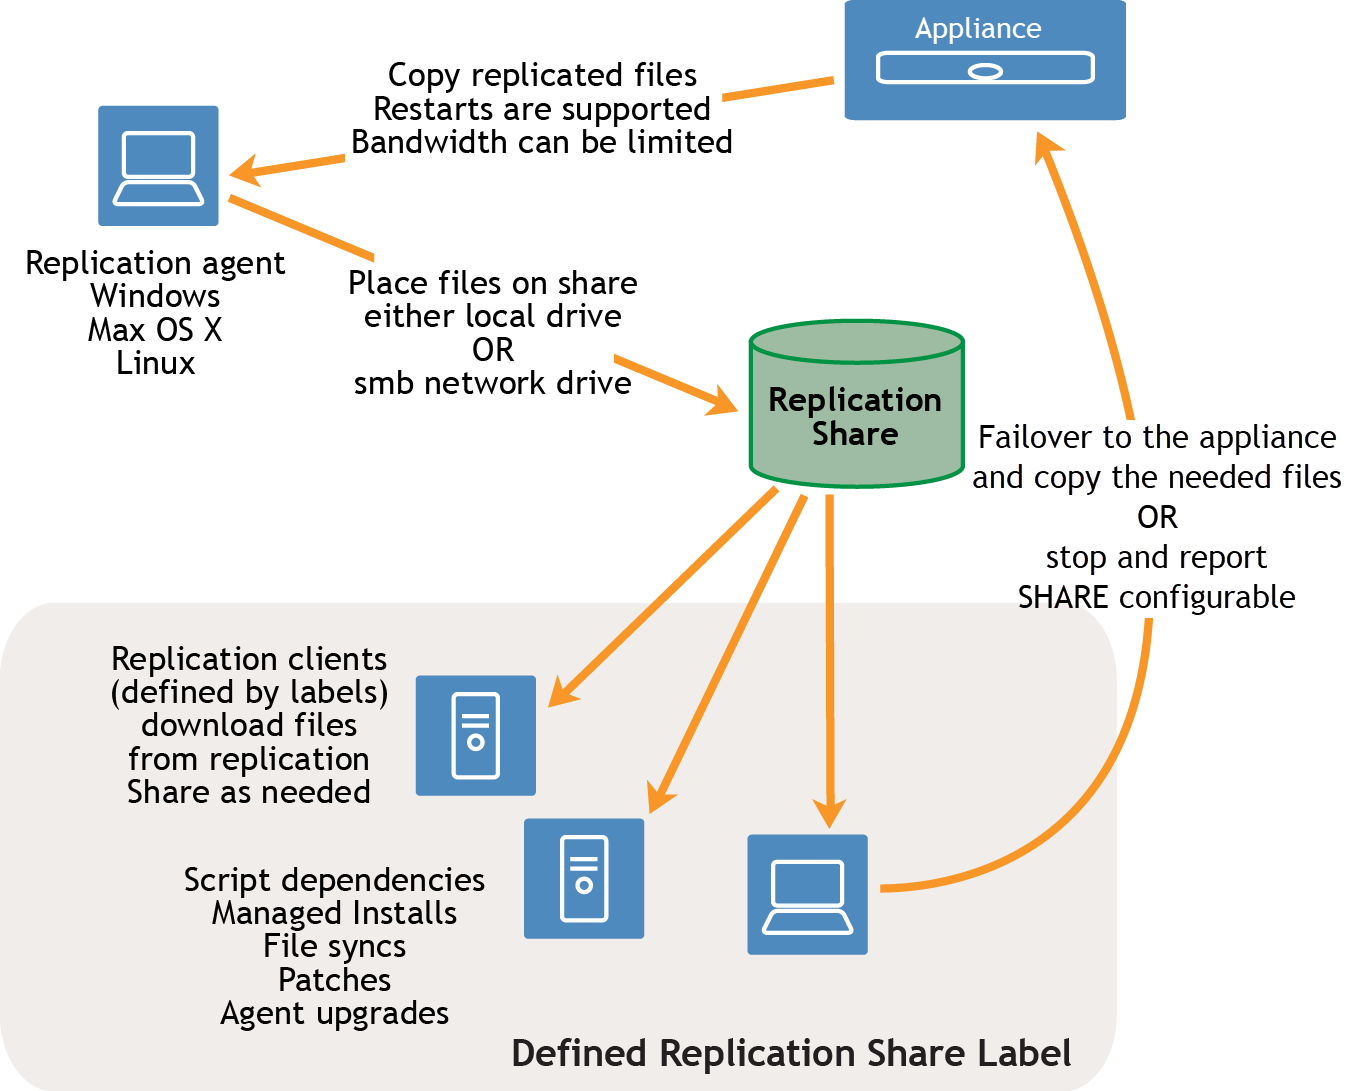 "In the task flow, an arrow goes from a appliance to a Replication Agent. The arrow has a tag reading ""copy replication files. Restarts are supported. Bandwidth can be limited. The Replication Agent can run be a Windows device, a Mac OS X device, or a Linux device. An arrow goes from the Replication Agent to the Replication Share. The has a tag reading ""Place file on Share, either local drive or smb network drive."" From the Replication Share, arrows go to various Replication Clients that are defined by a Replication Share Label."